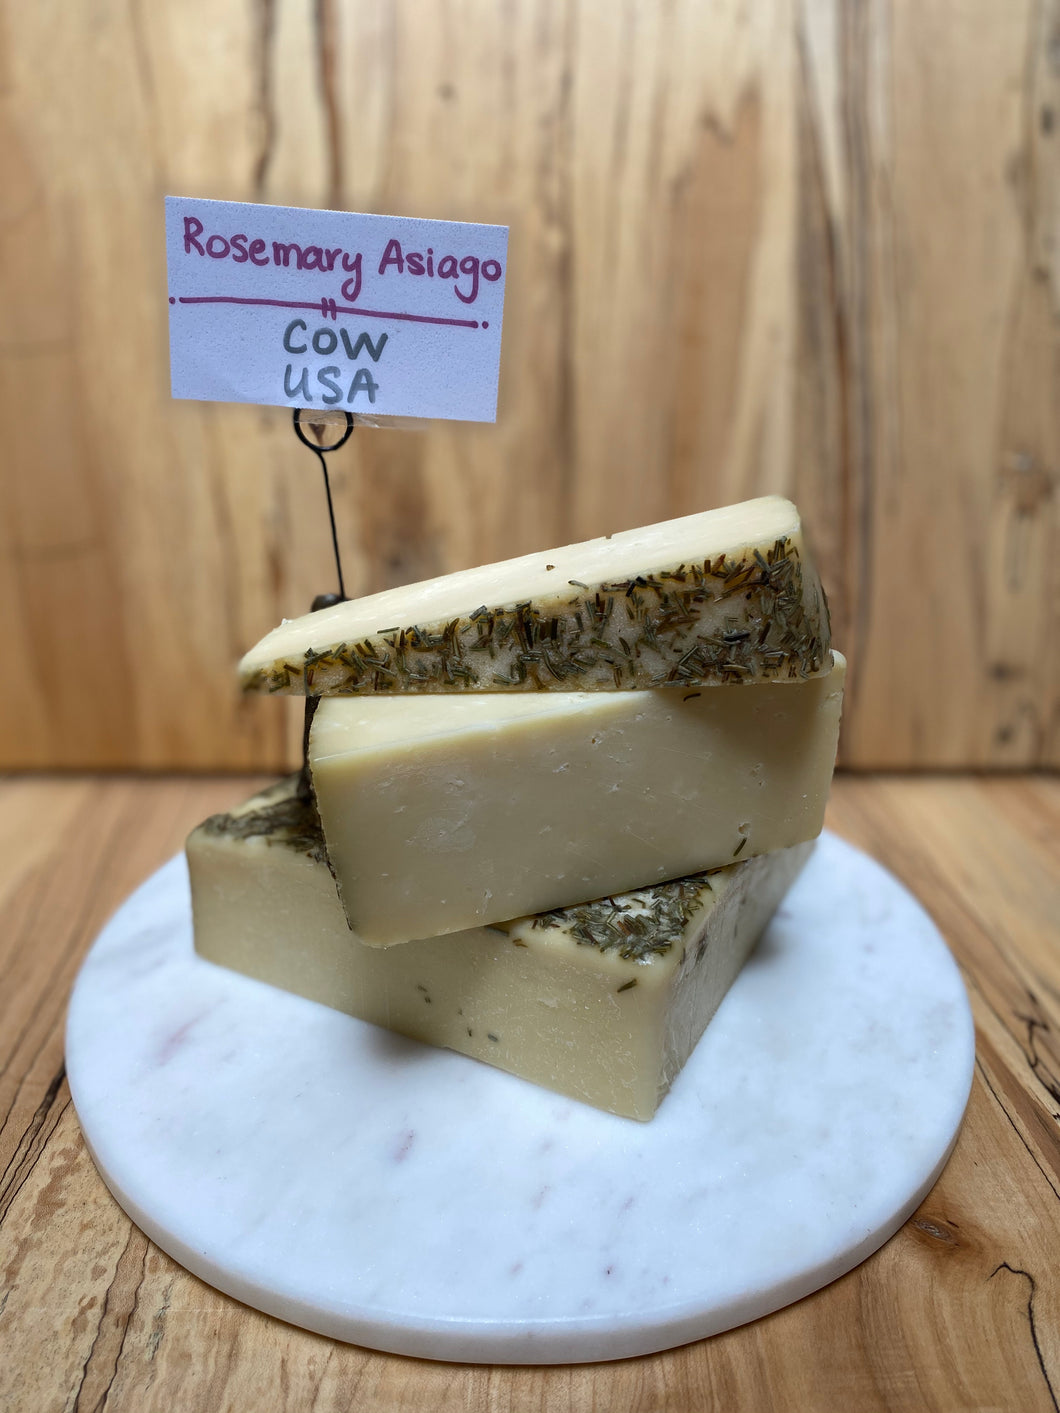 Rosemary Asiago (cow)